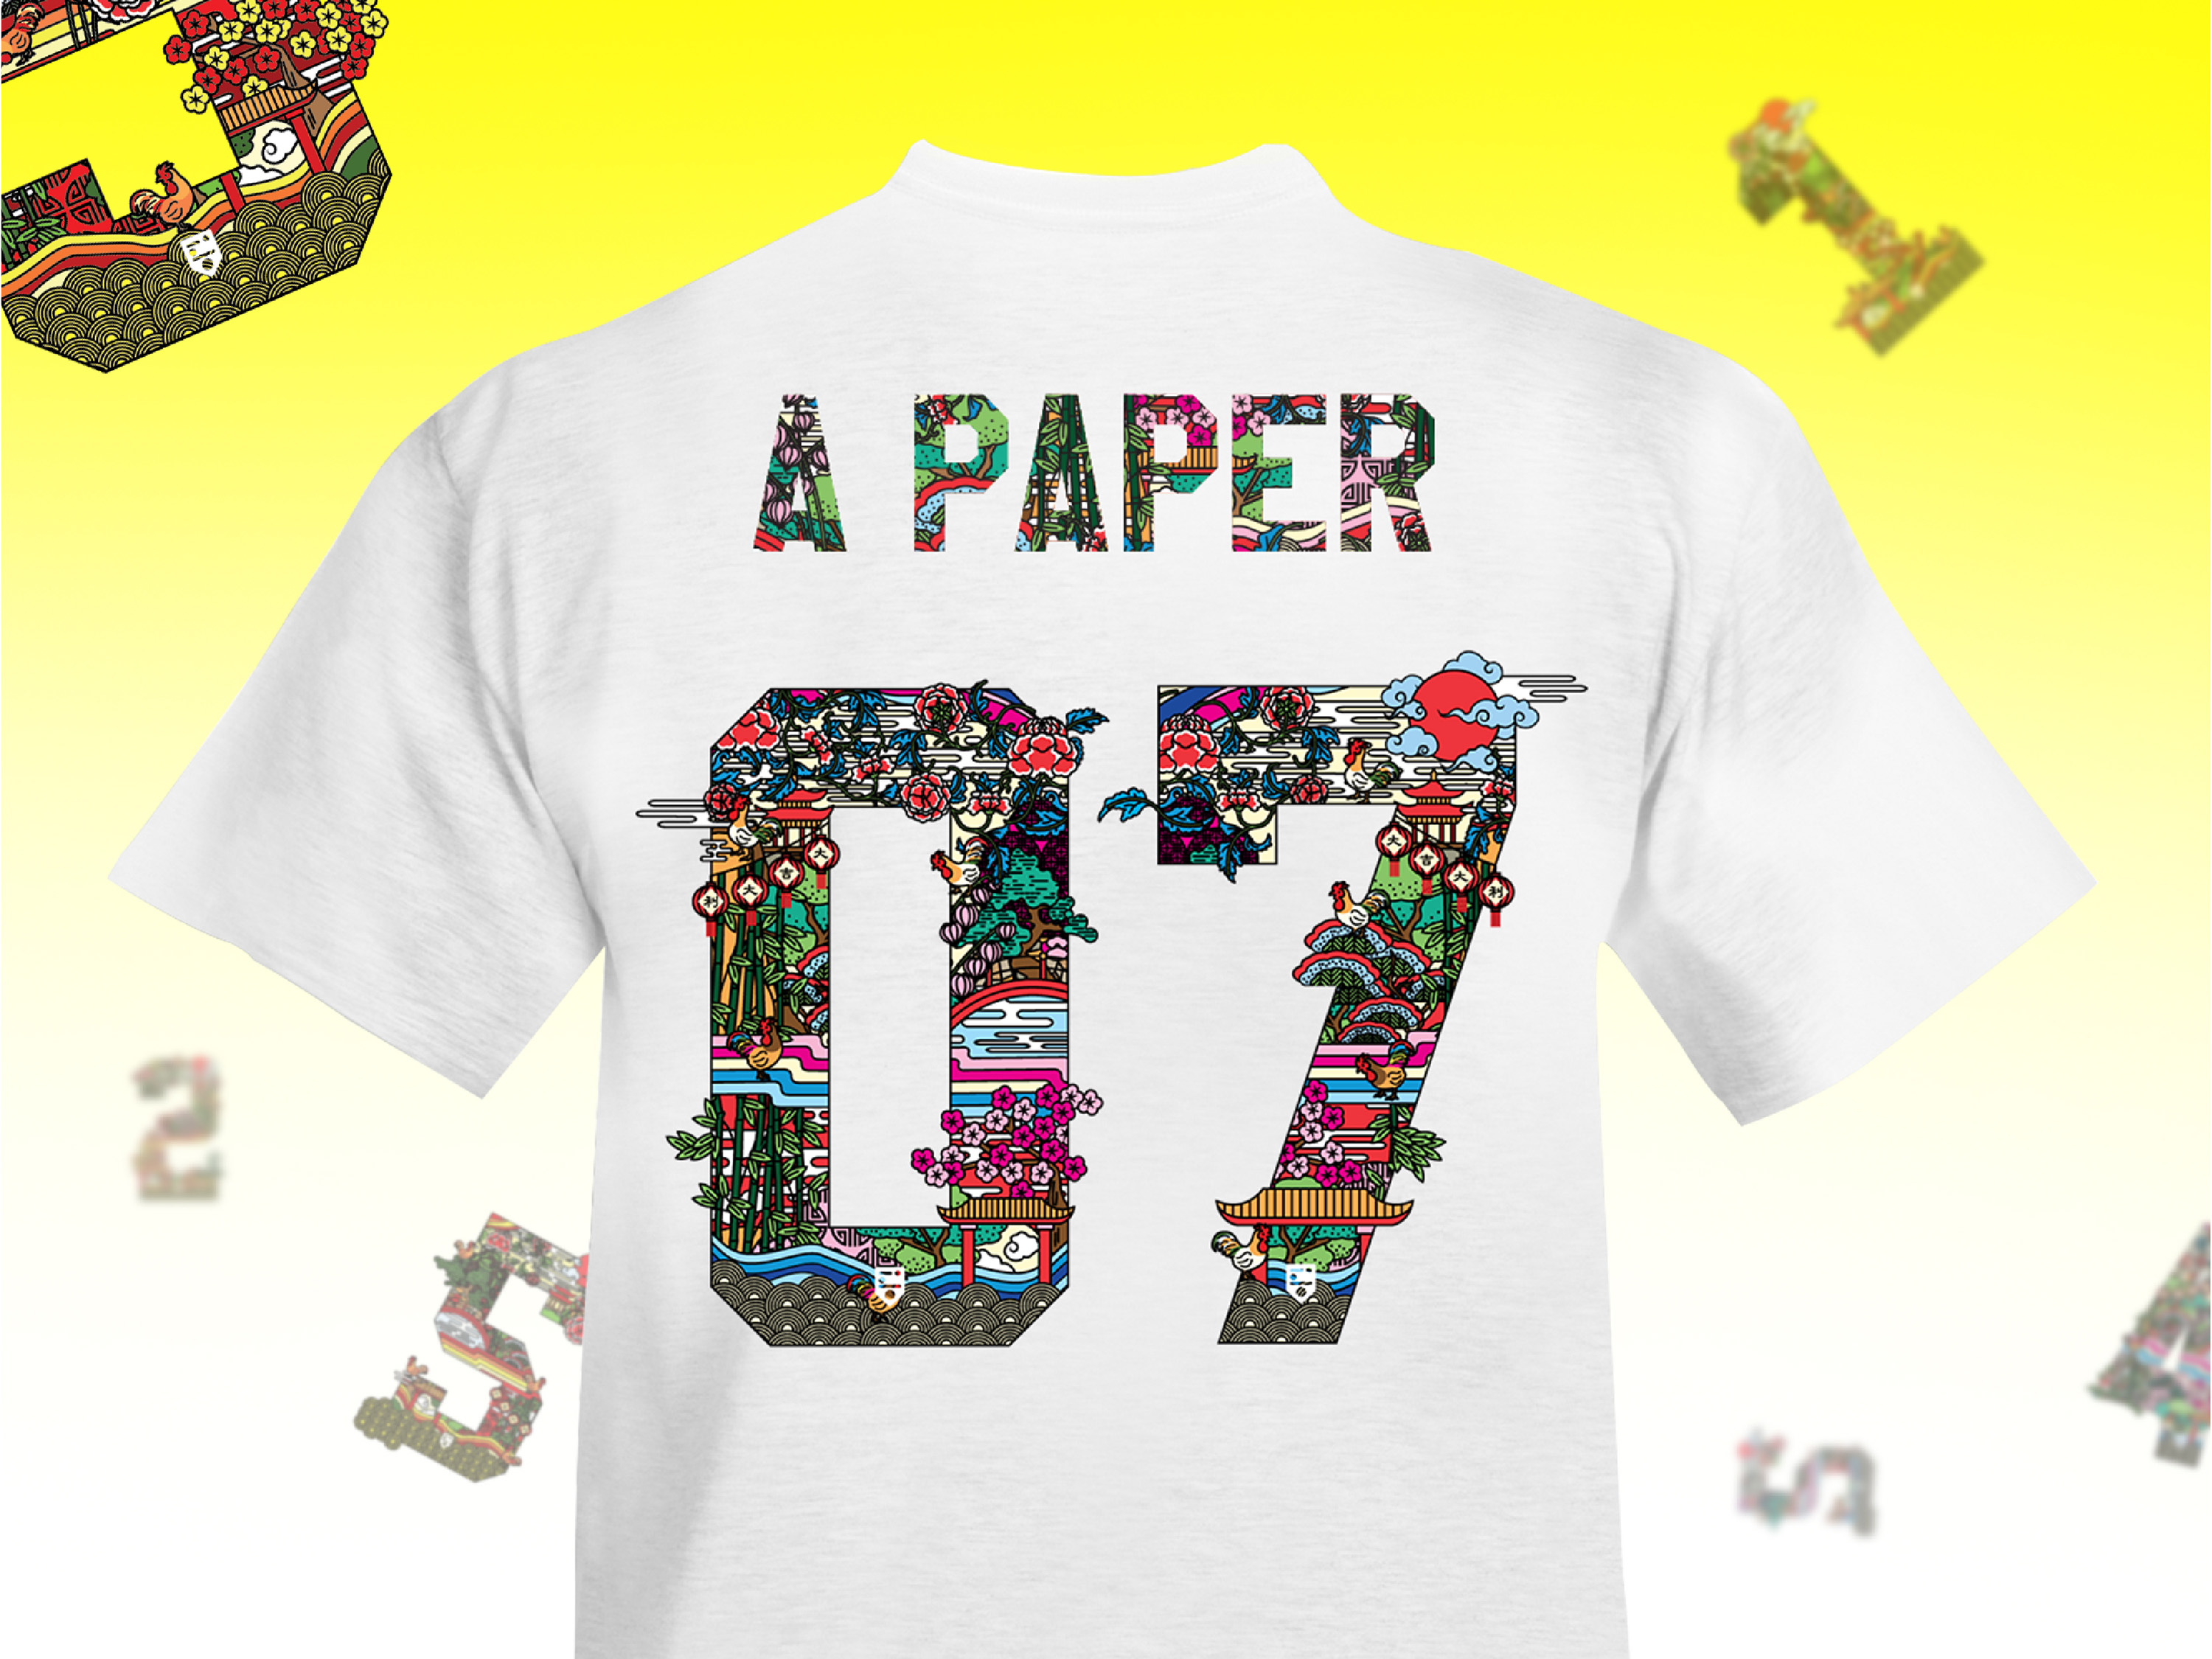 IDOTshirt fashion brand Chinese New Year - Year of the Rooster illustration of numbers and alphabets in two different tones of festive colour on tshirt